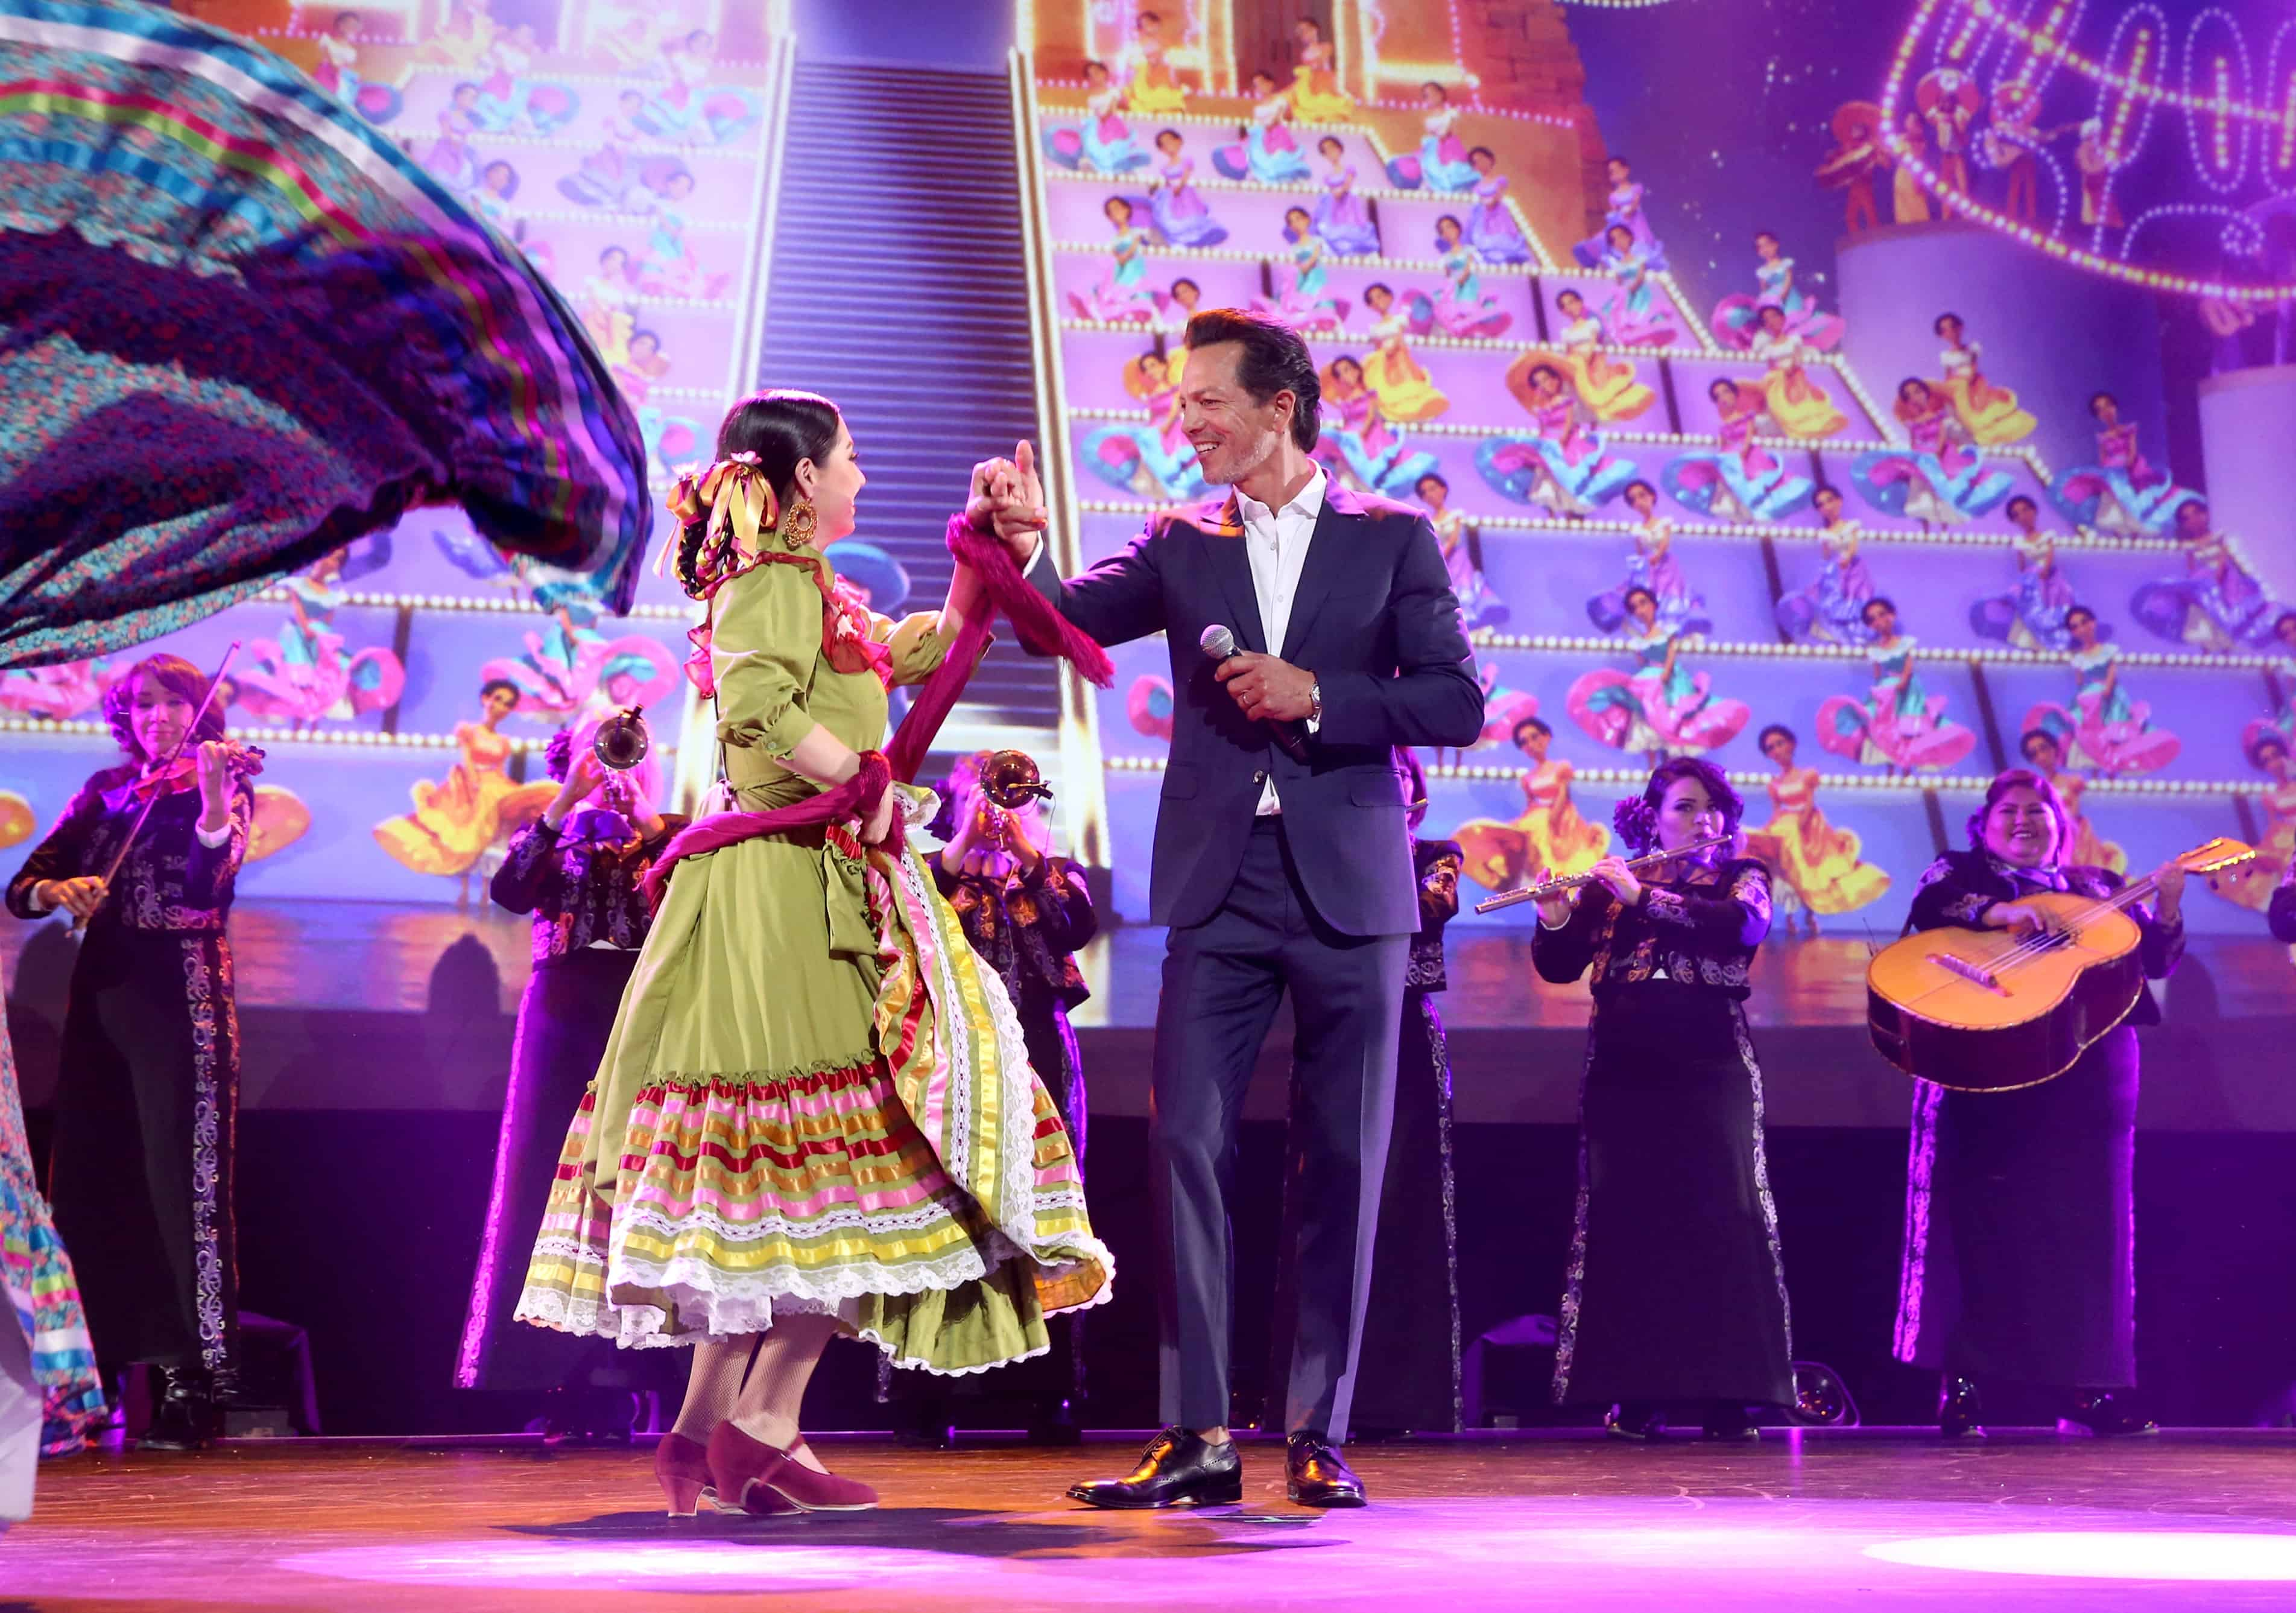 ANAHEIM, CA - JULY 14: Dancer Kareli Montoya (L) and actor Benjamin Bratt of COCO took part today in the Walt Disney Studios animation presentation at Disney's D23 EXPO 2017 in Anaheim, Calif. COCO will be released in U.S. theaters on November 22, 2017. (Photo by Jesse Grant/Getty Images for Disney) *** Local Caption *** Kareli Montoya; Benjamin Bratt